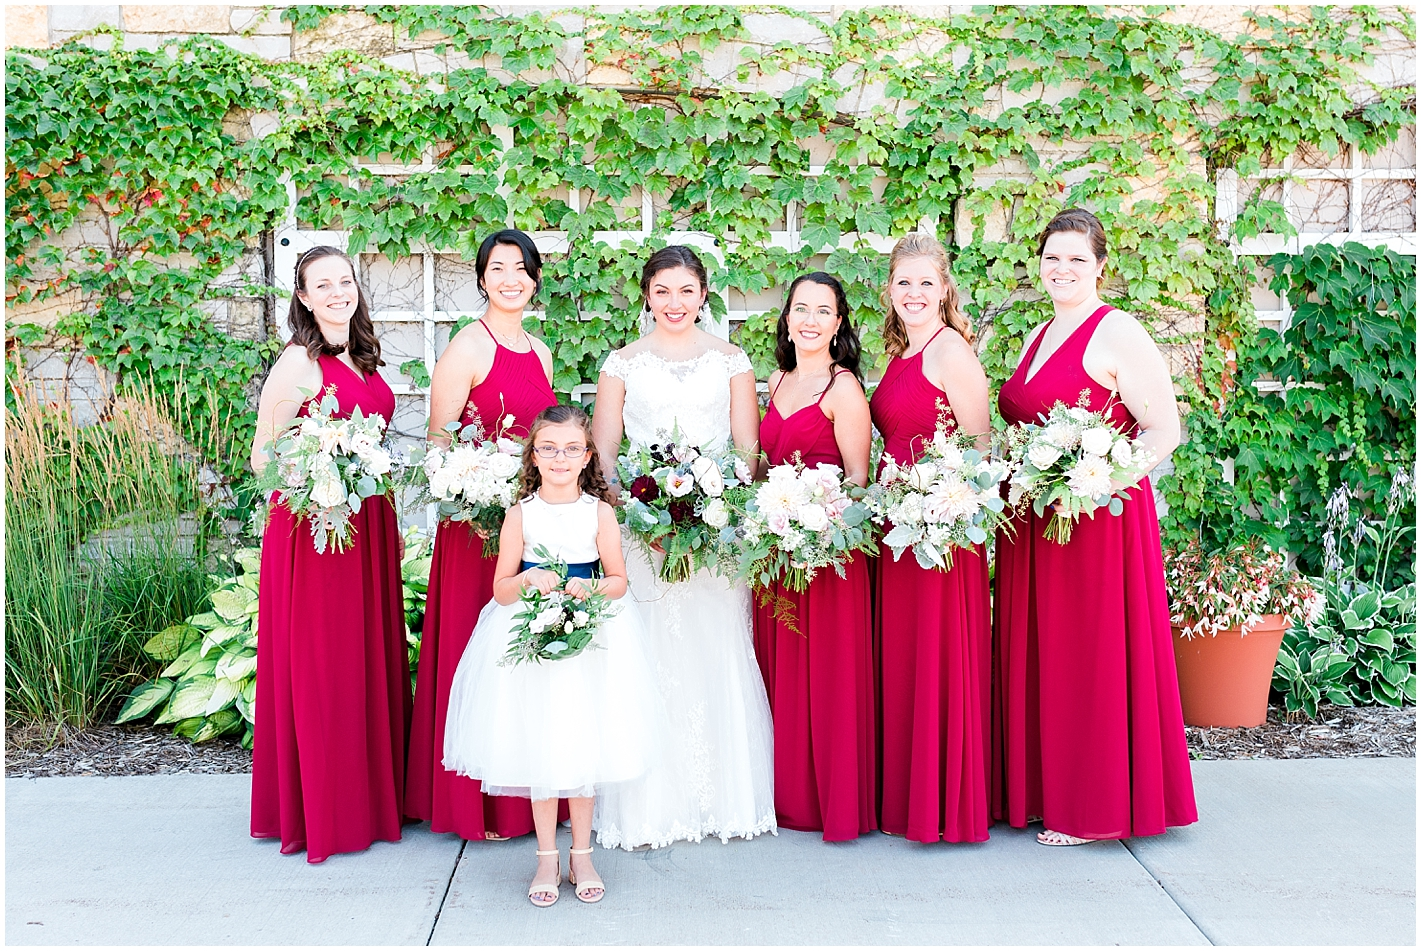 Bridesmaid formal photo By Alyssa Parker Photography